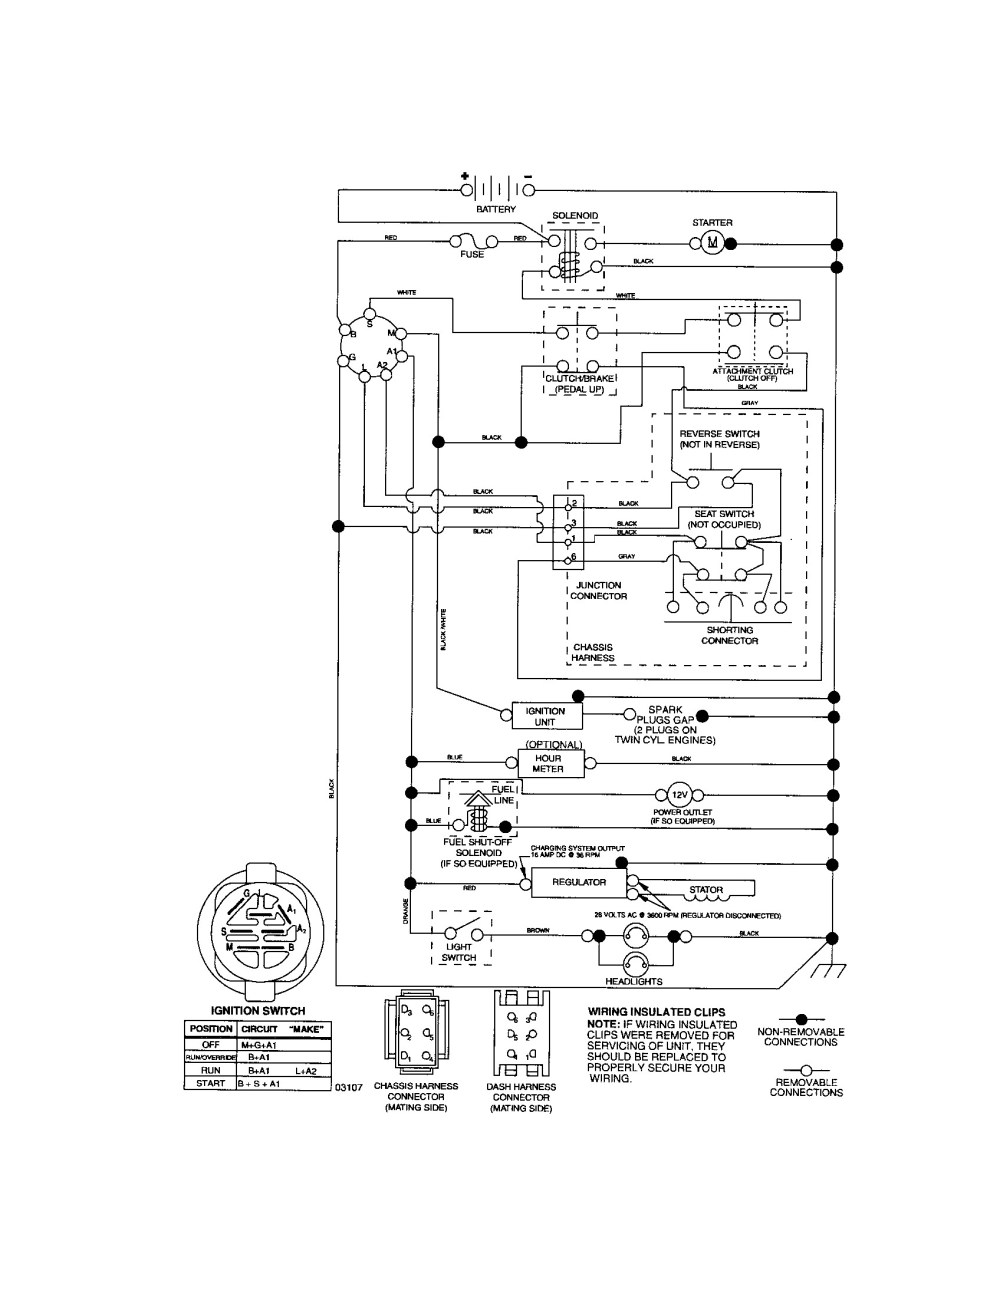 medium resolution of riding lawn mower ignition switch wiring diagram collection lawn mower ignition switch wiring diagram new